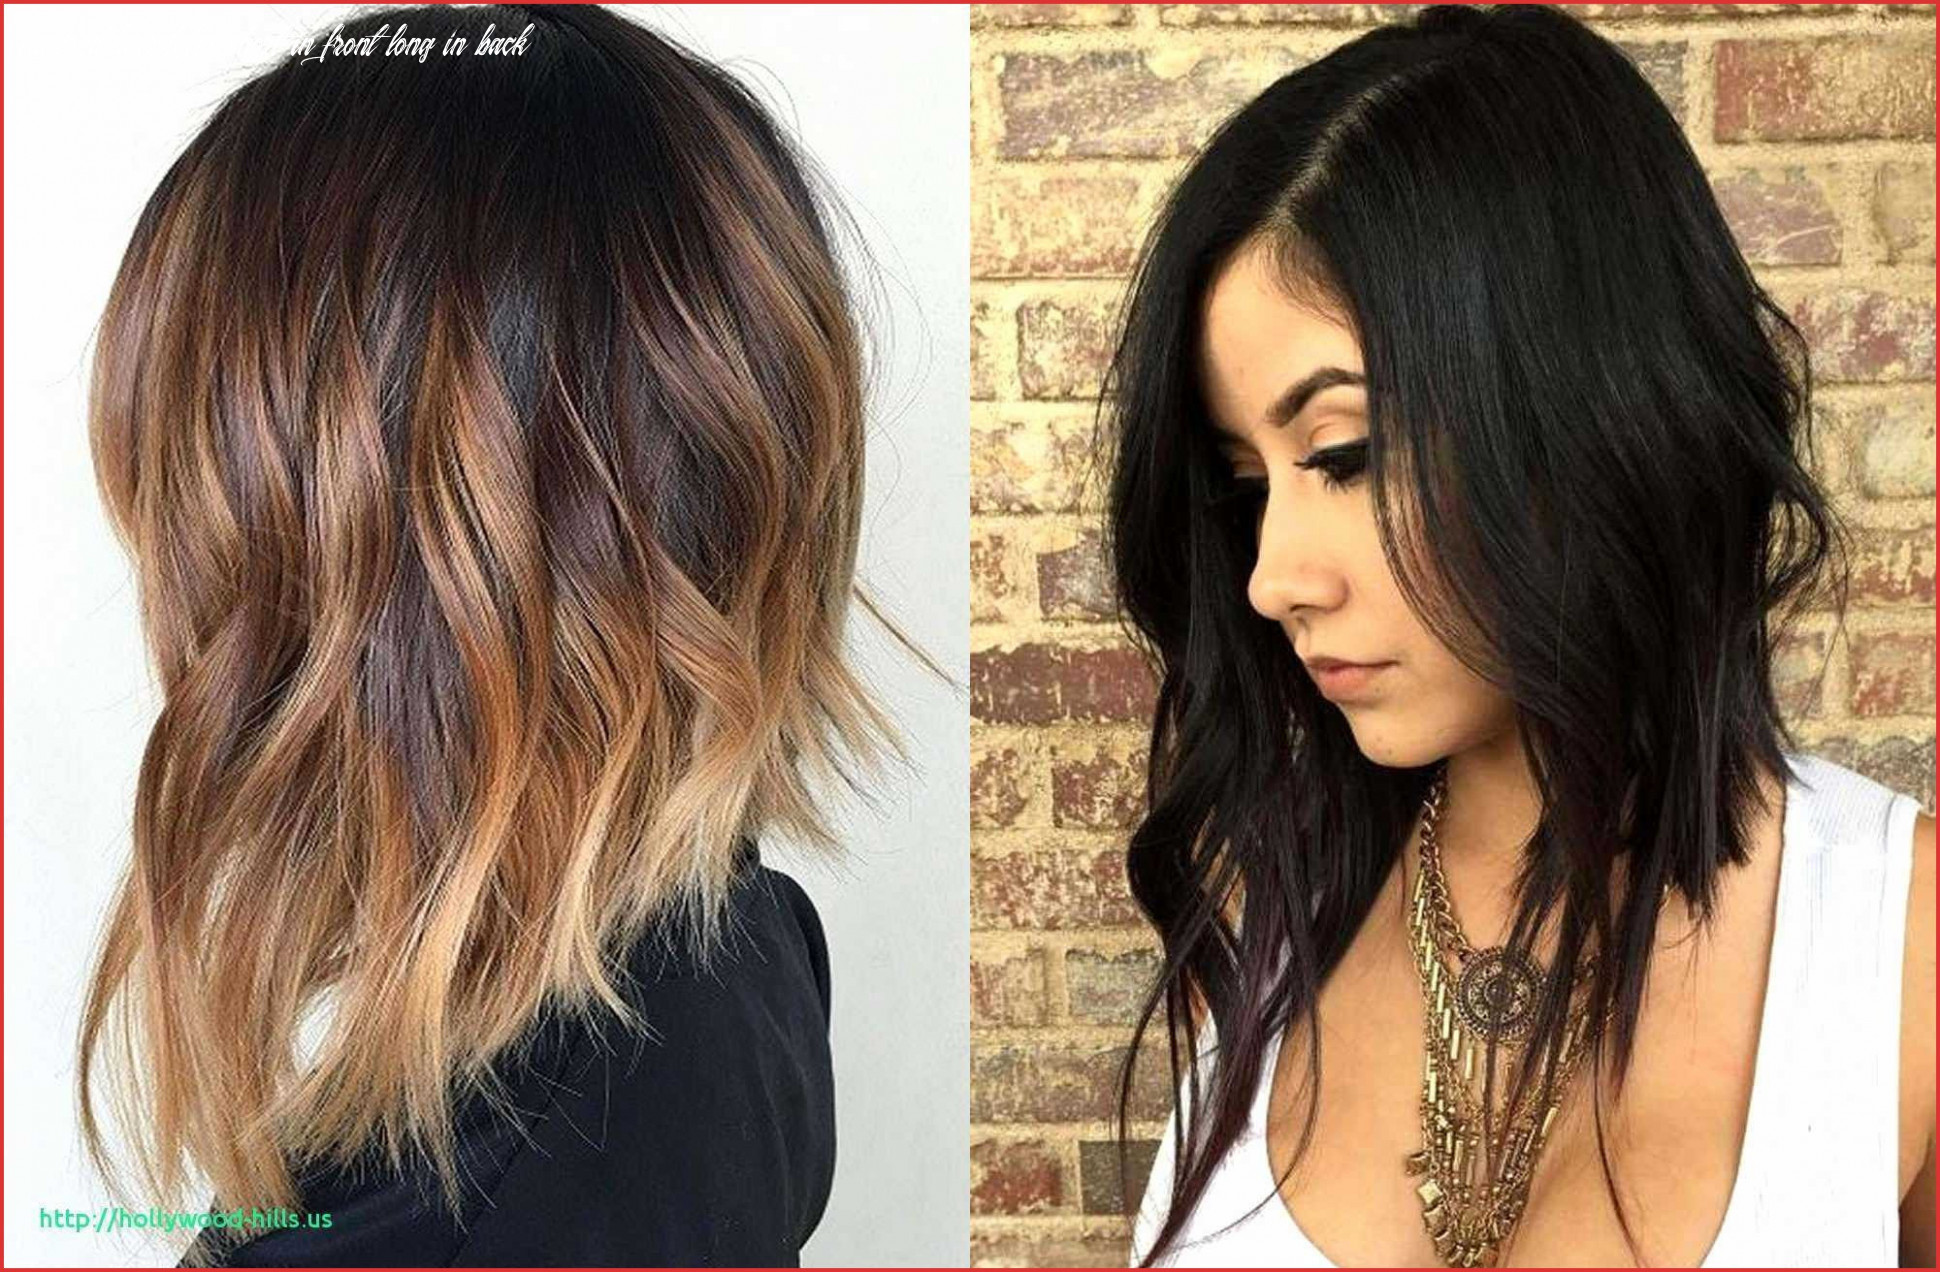 Hairstyles Long In Front Short In Back Pictures New Hairstyles ...